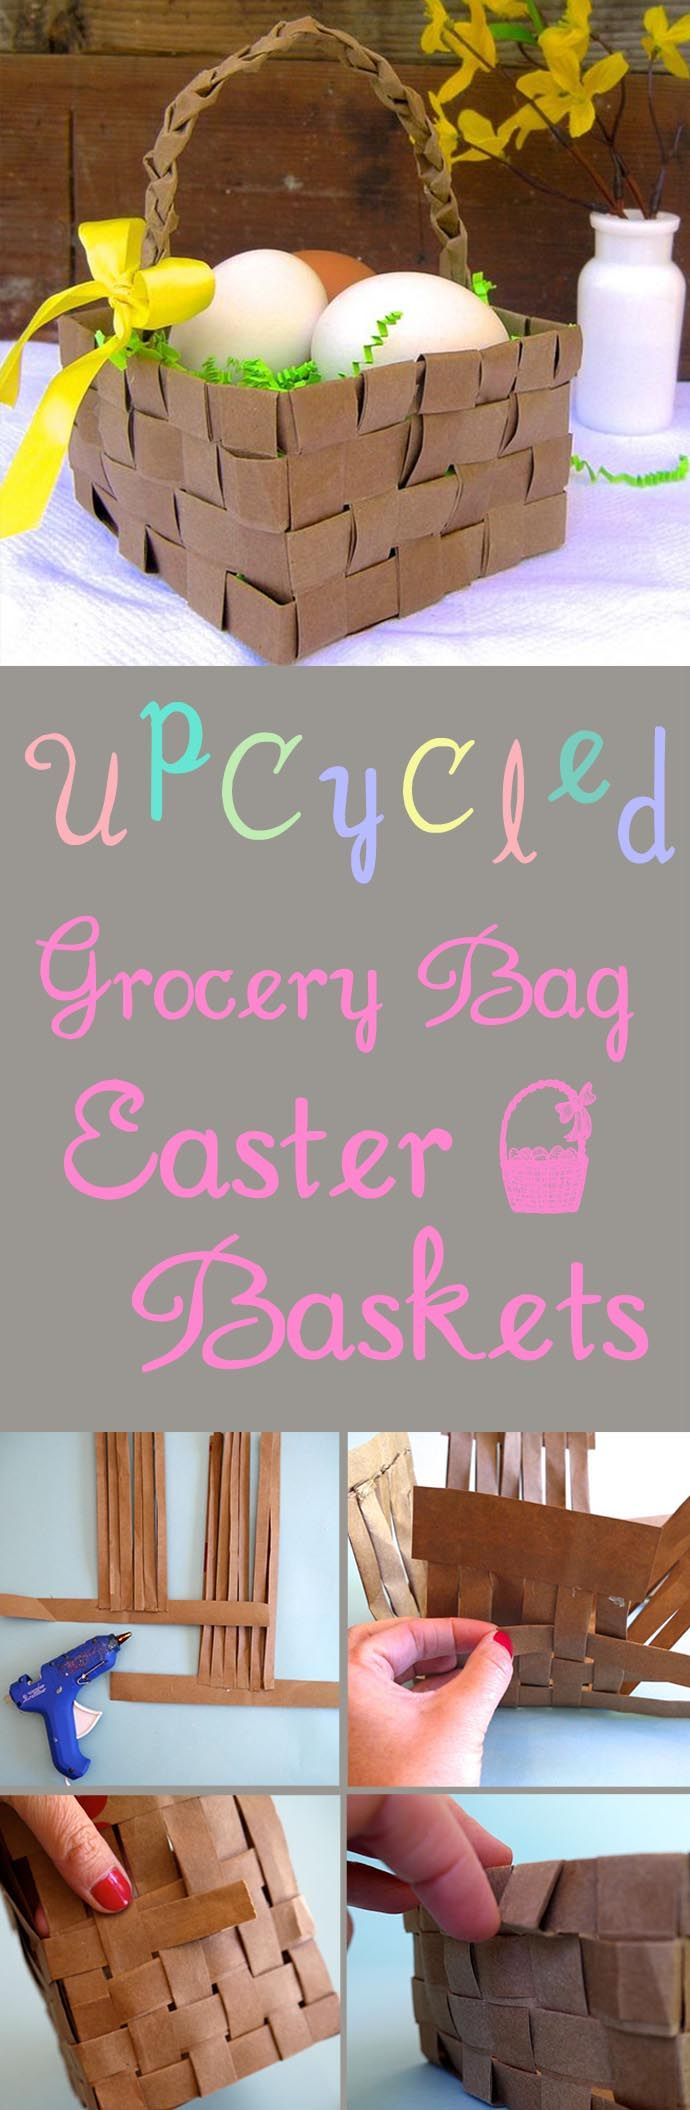 Weave your own basket with paper grocery bags! Super fun project with the kids. #DIY #Easter